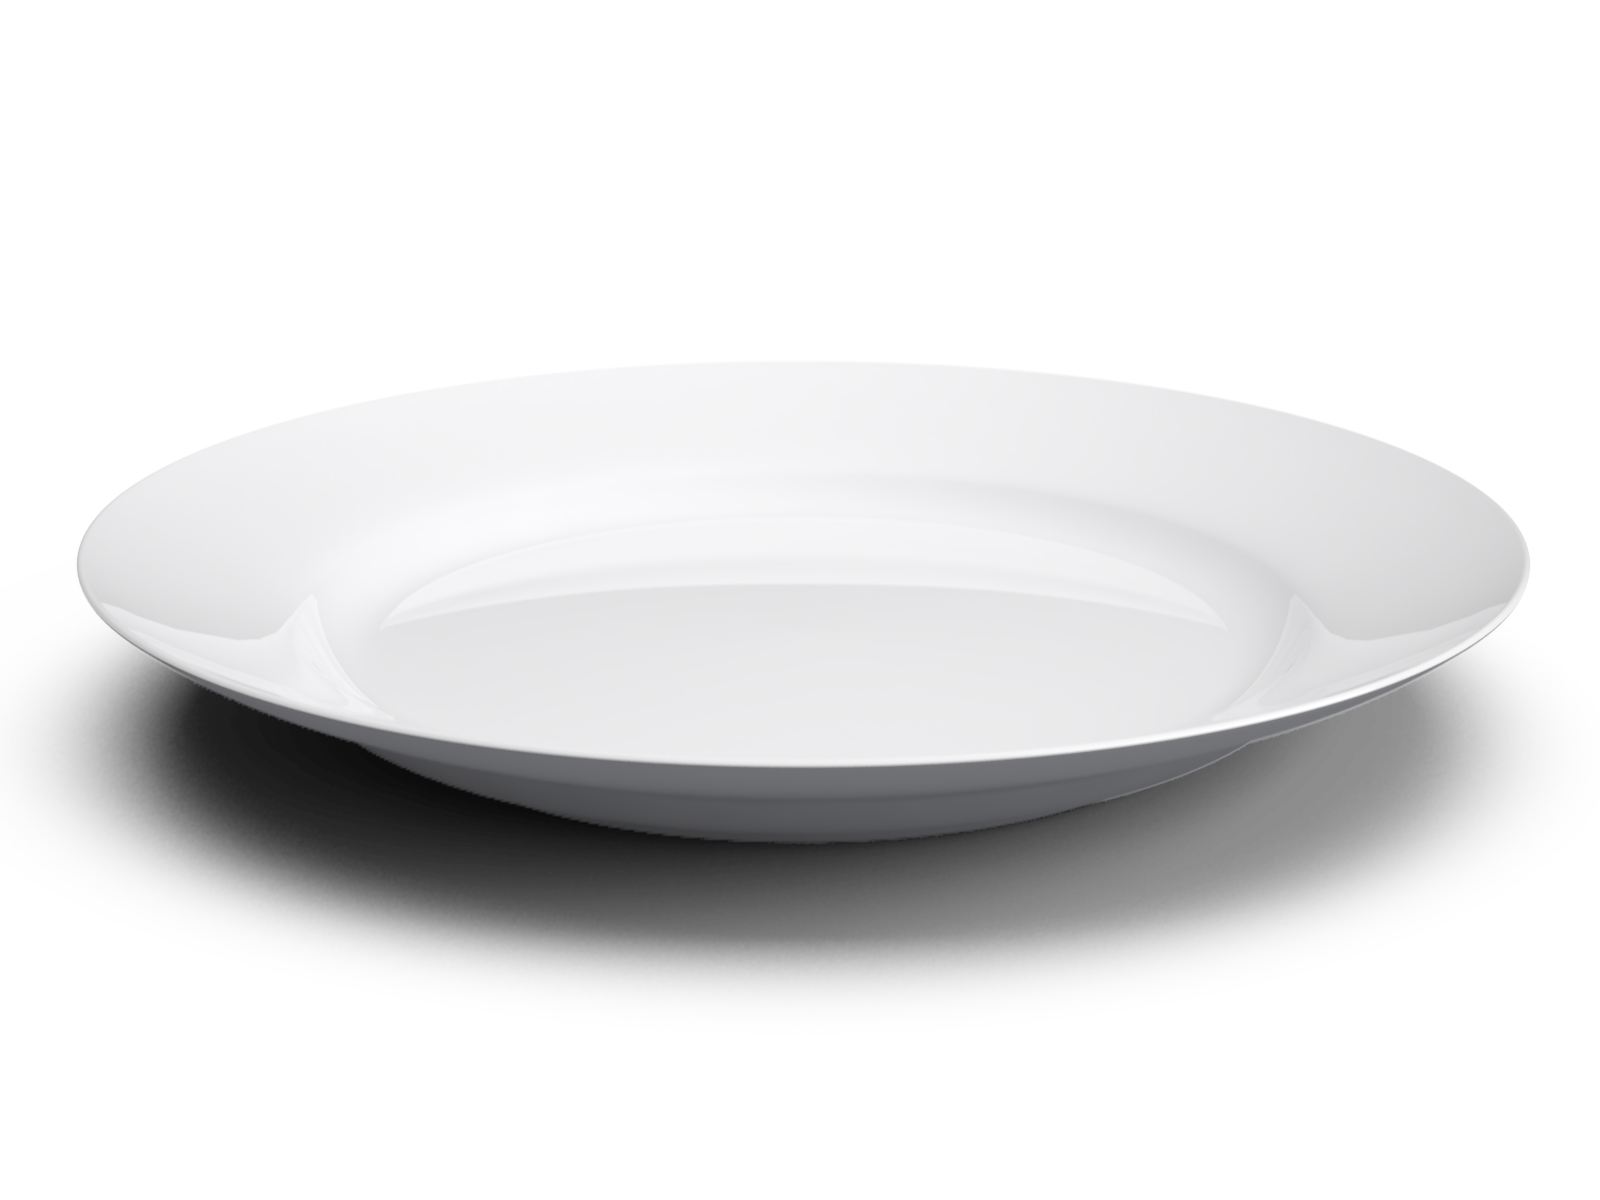 White Basic Plate With Shadow Png Image Purepng Free Transparent Cc0 Png Image Library Plate Png Plates Shadow